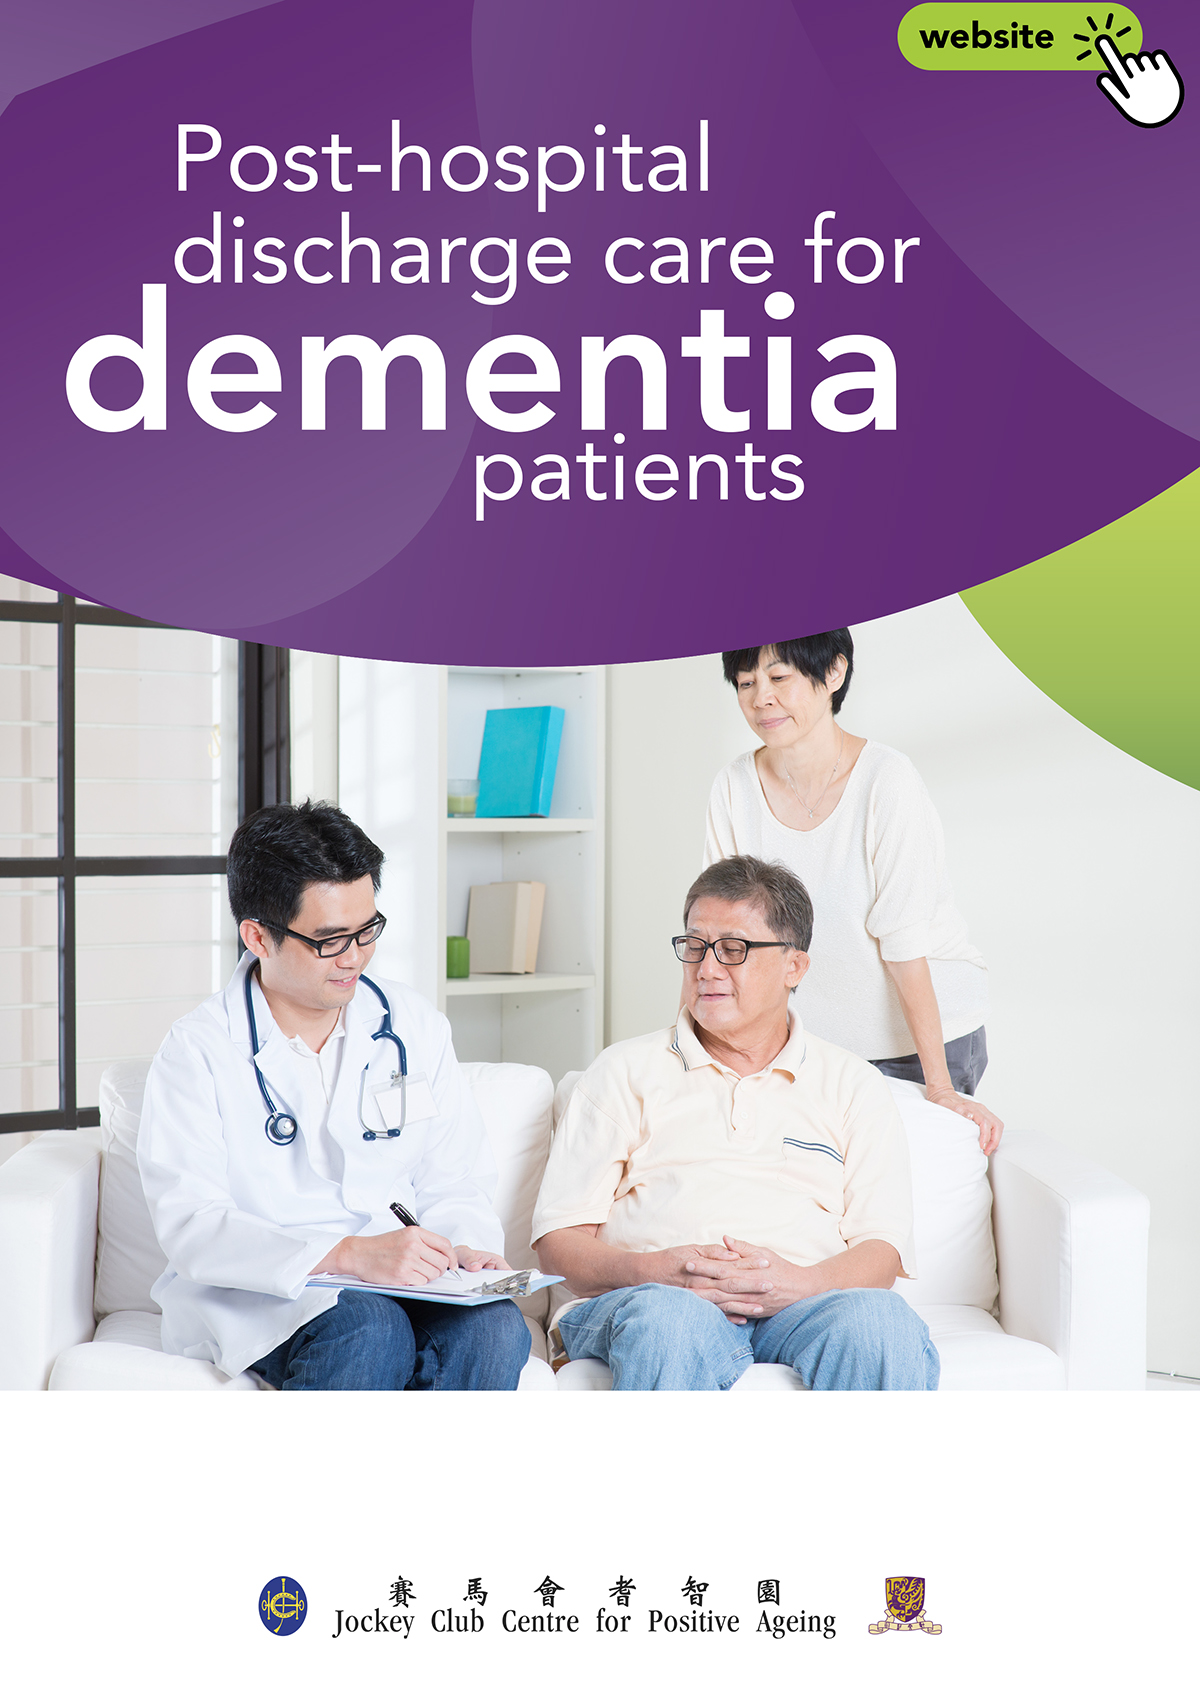 elderly dementia patients, hospital re admission